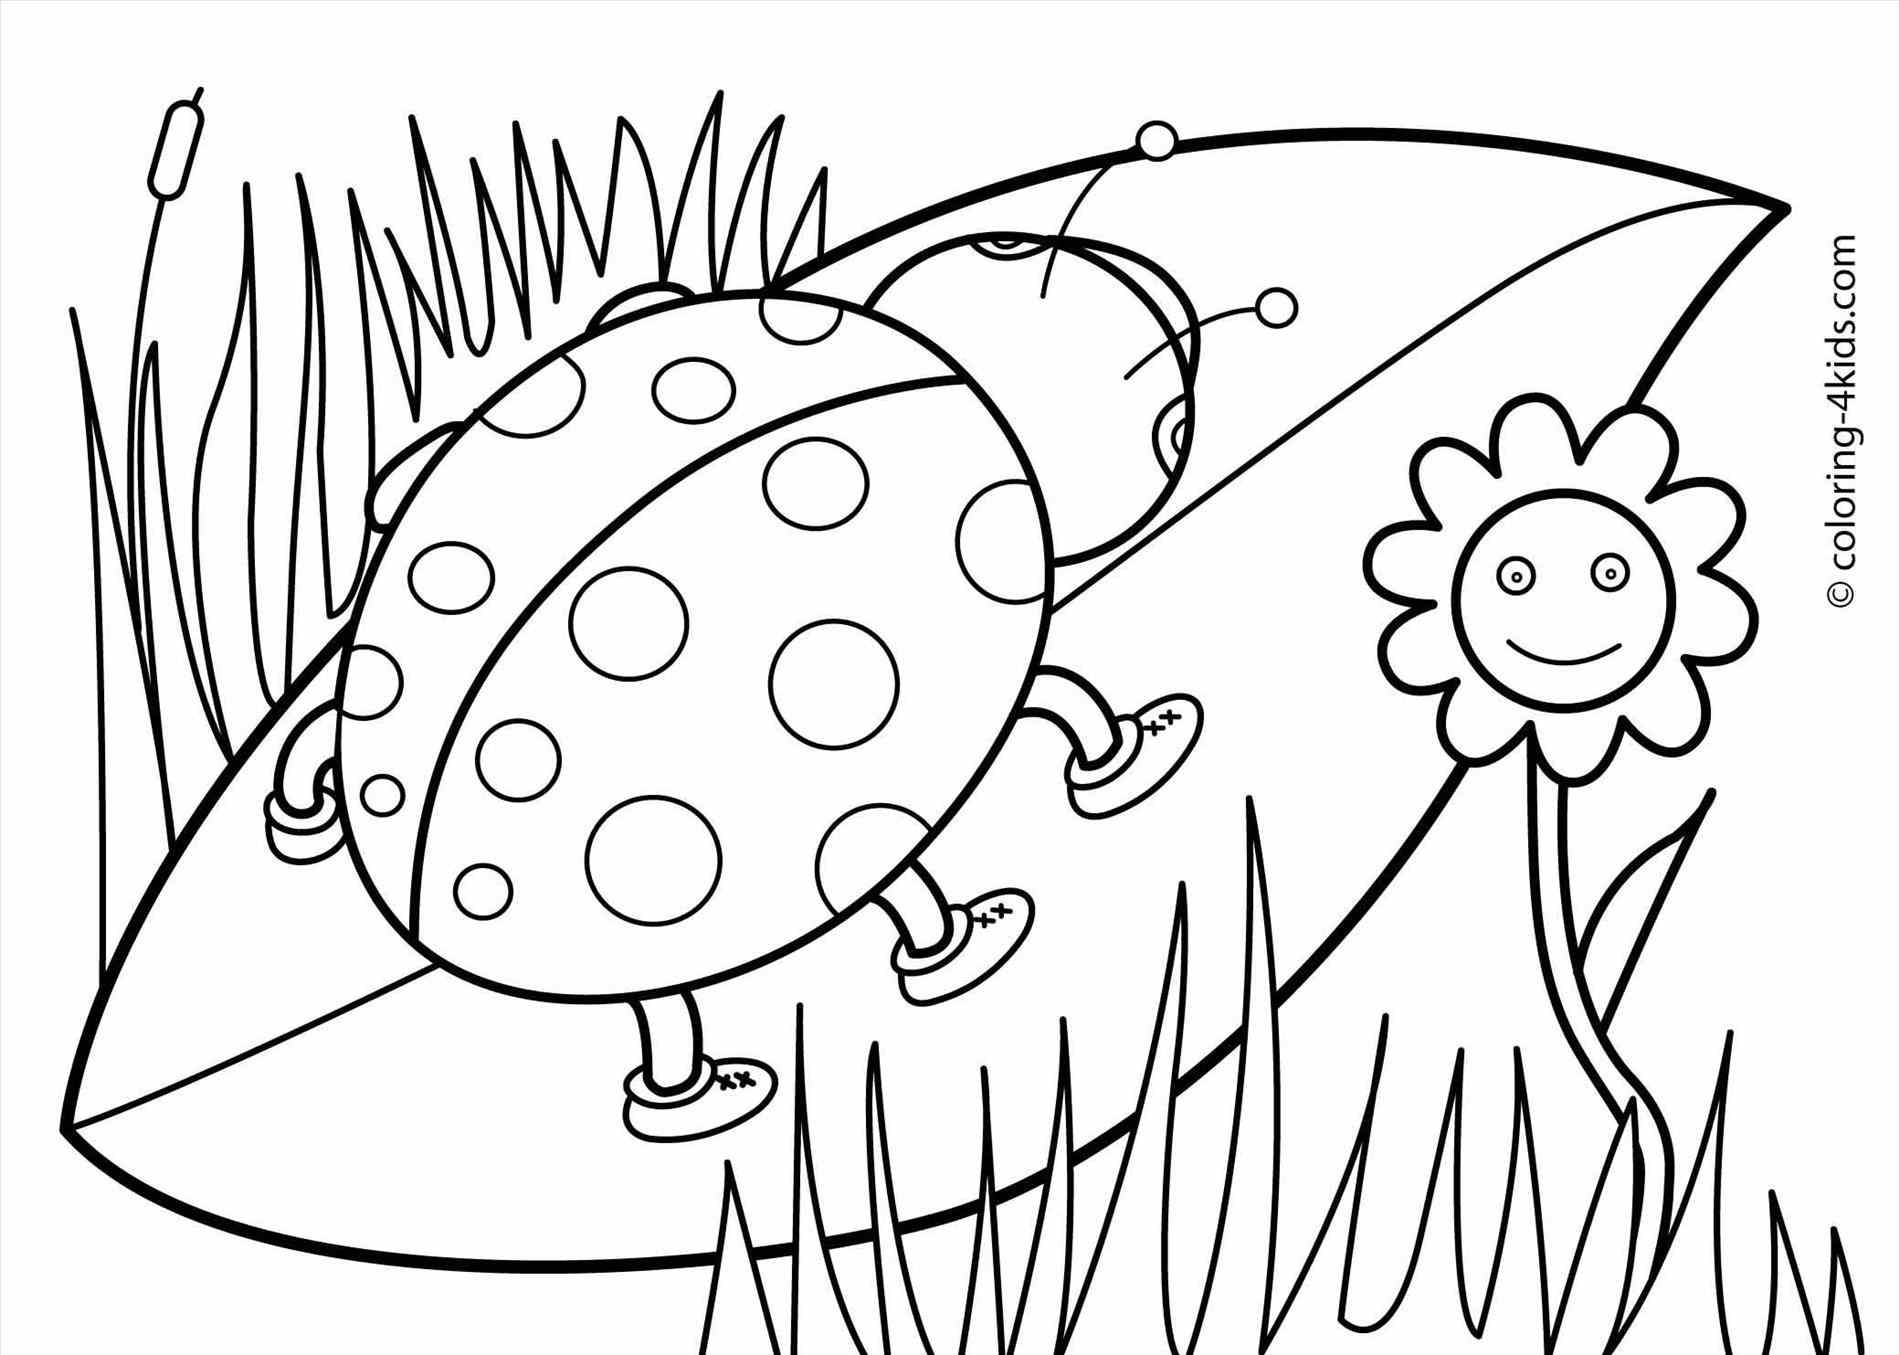 1899x1355 Kids S Pages Happy Spring Season Drawing Coloring Page For Kids S